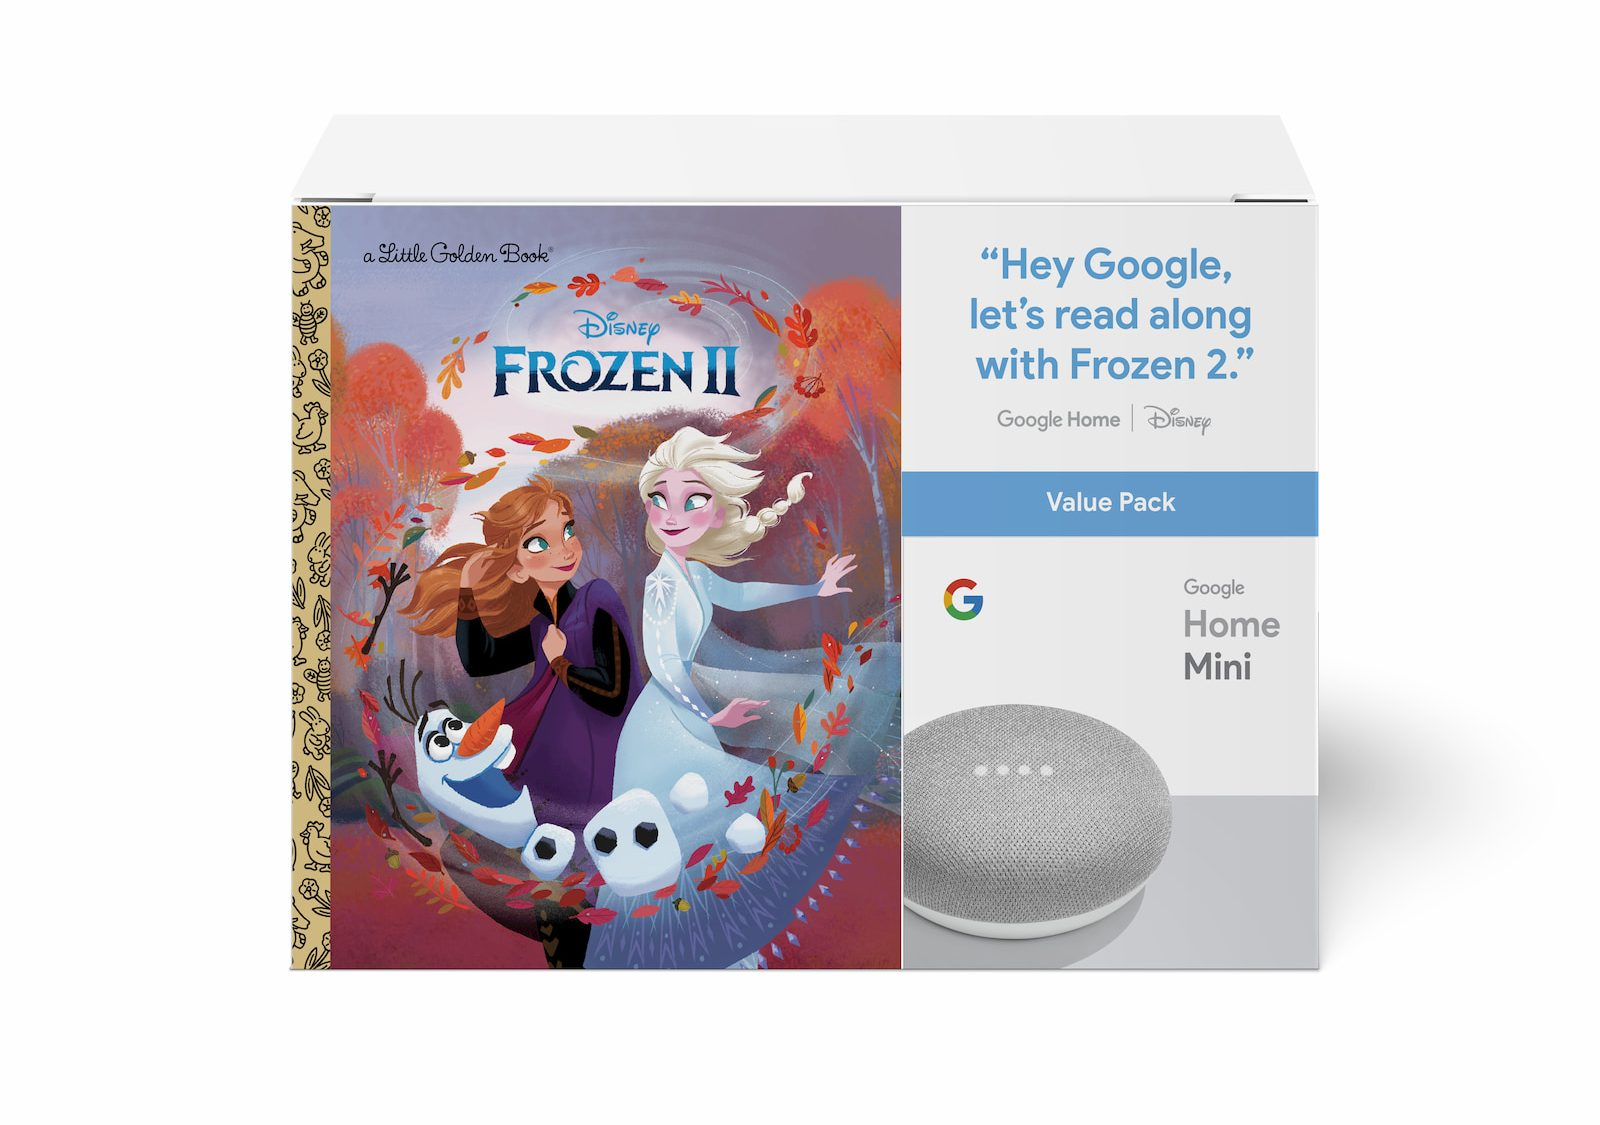 Deal Alert: Enjoy storytime with the Google Assistant, Frozen 2 and more for only $25